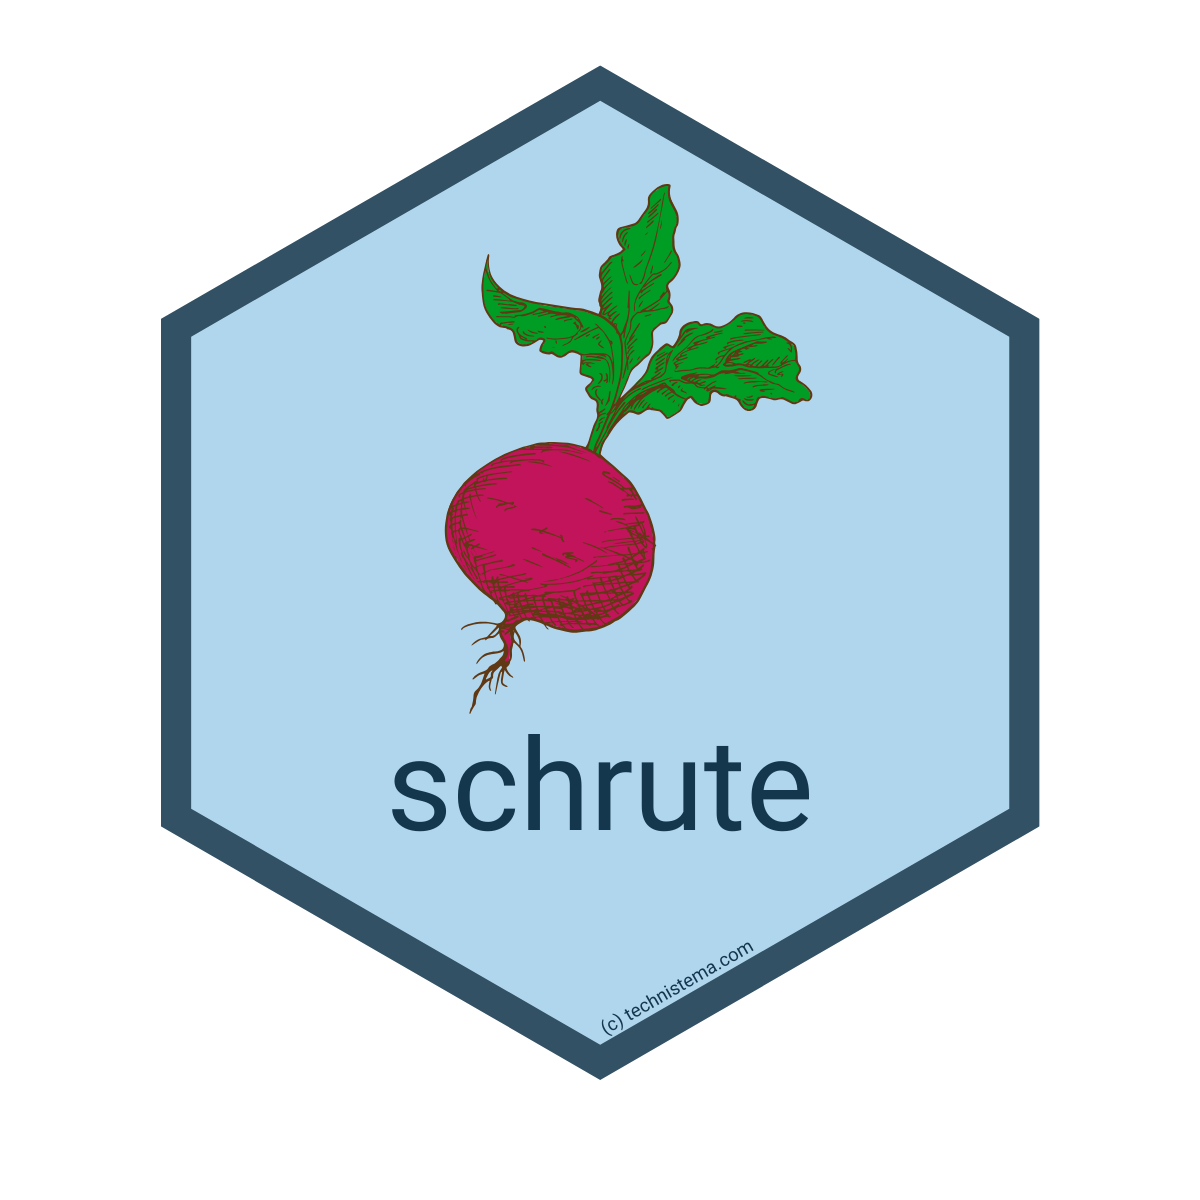 Schrute R package - image of a beet